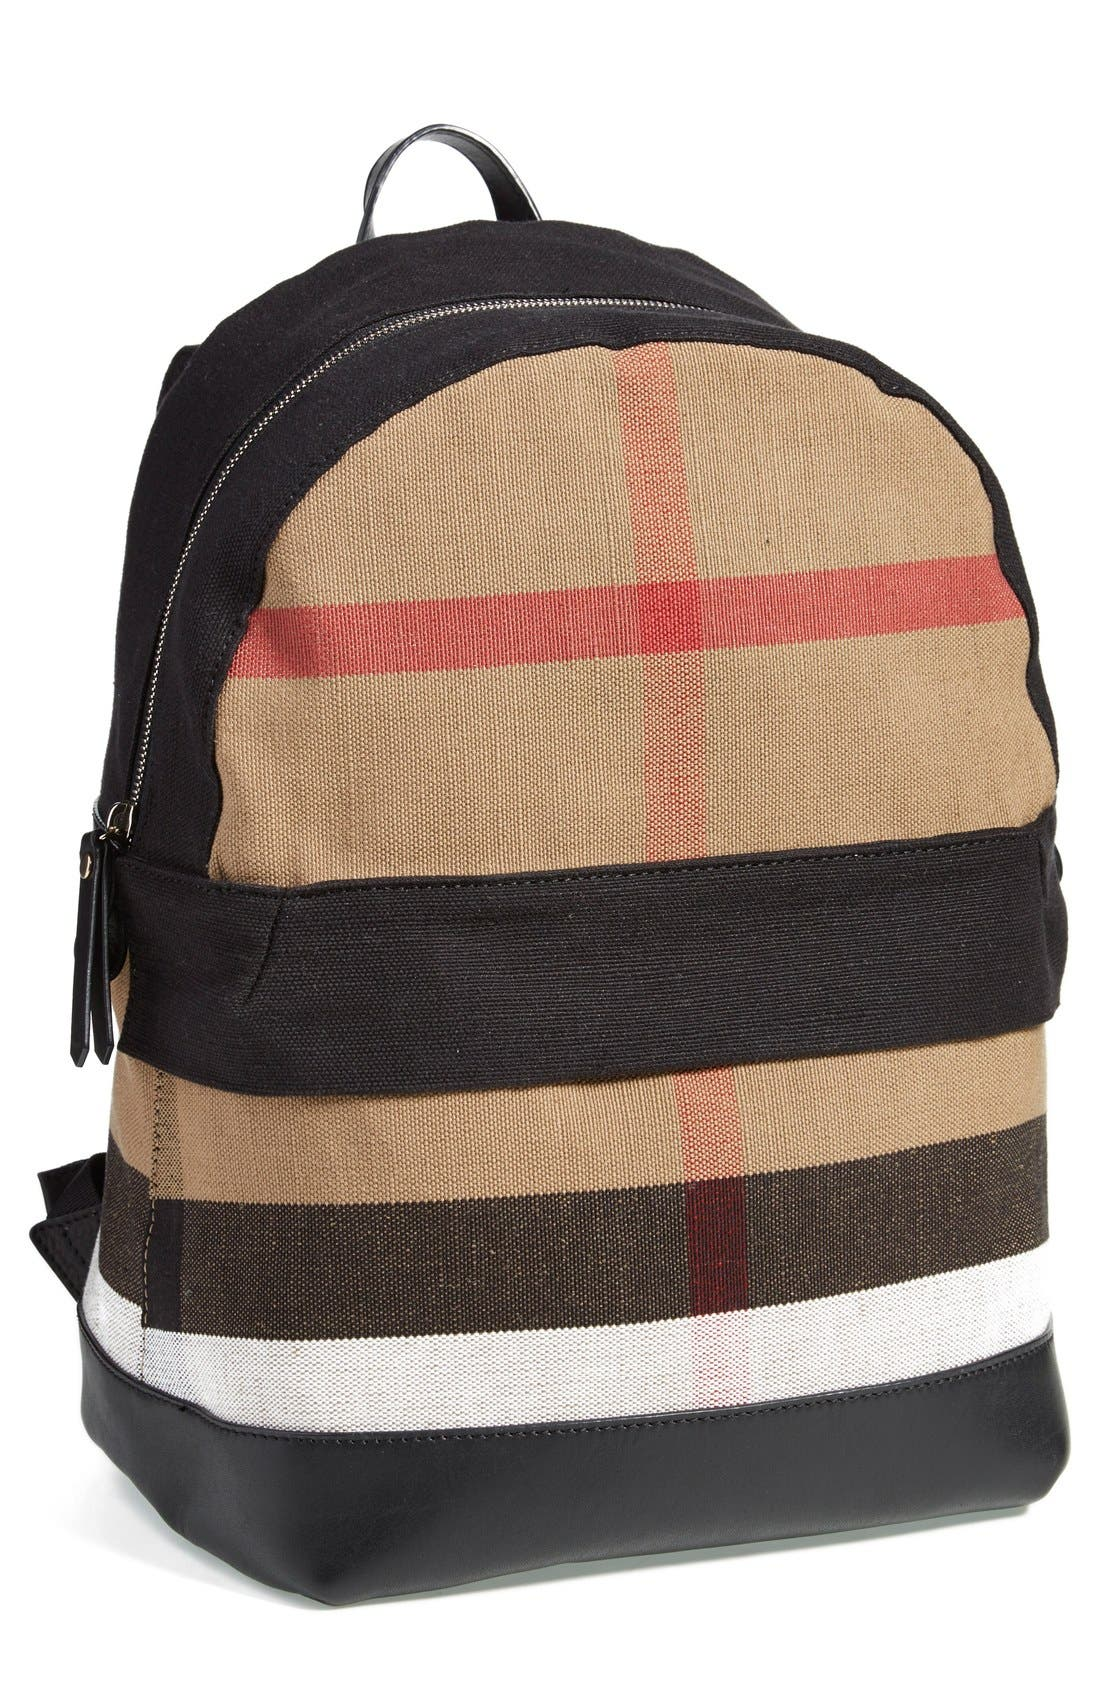 Burberry Check Print Canvas Backpack